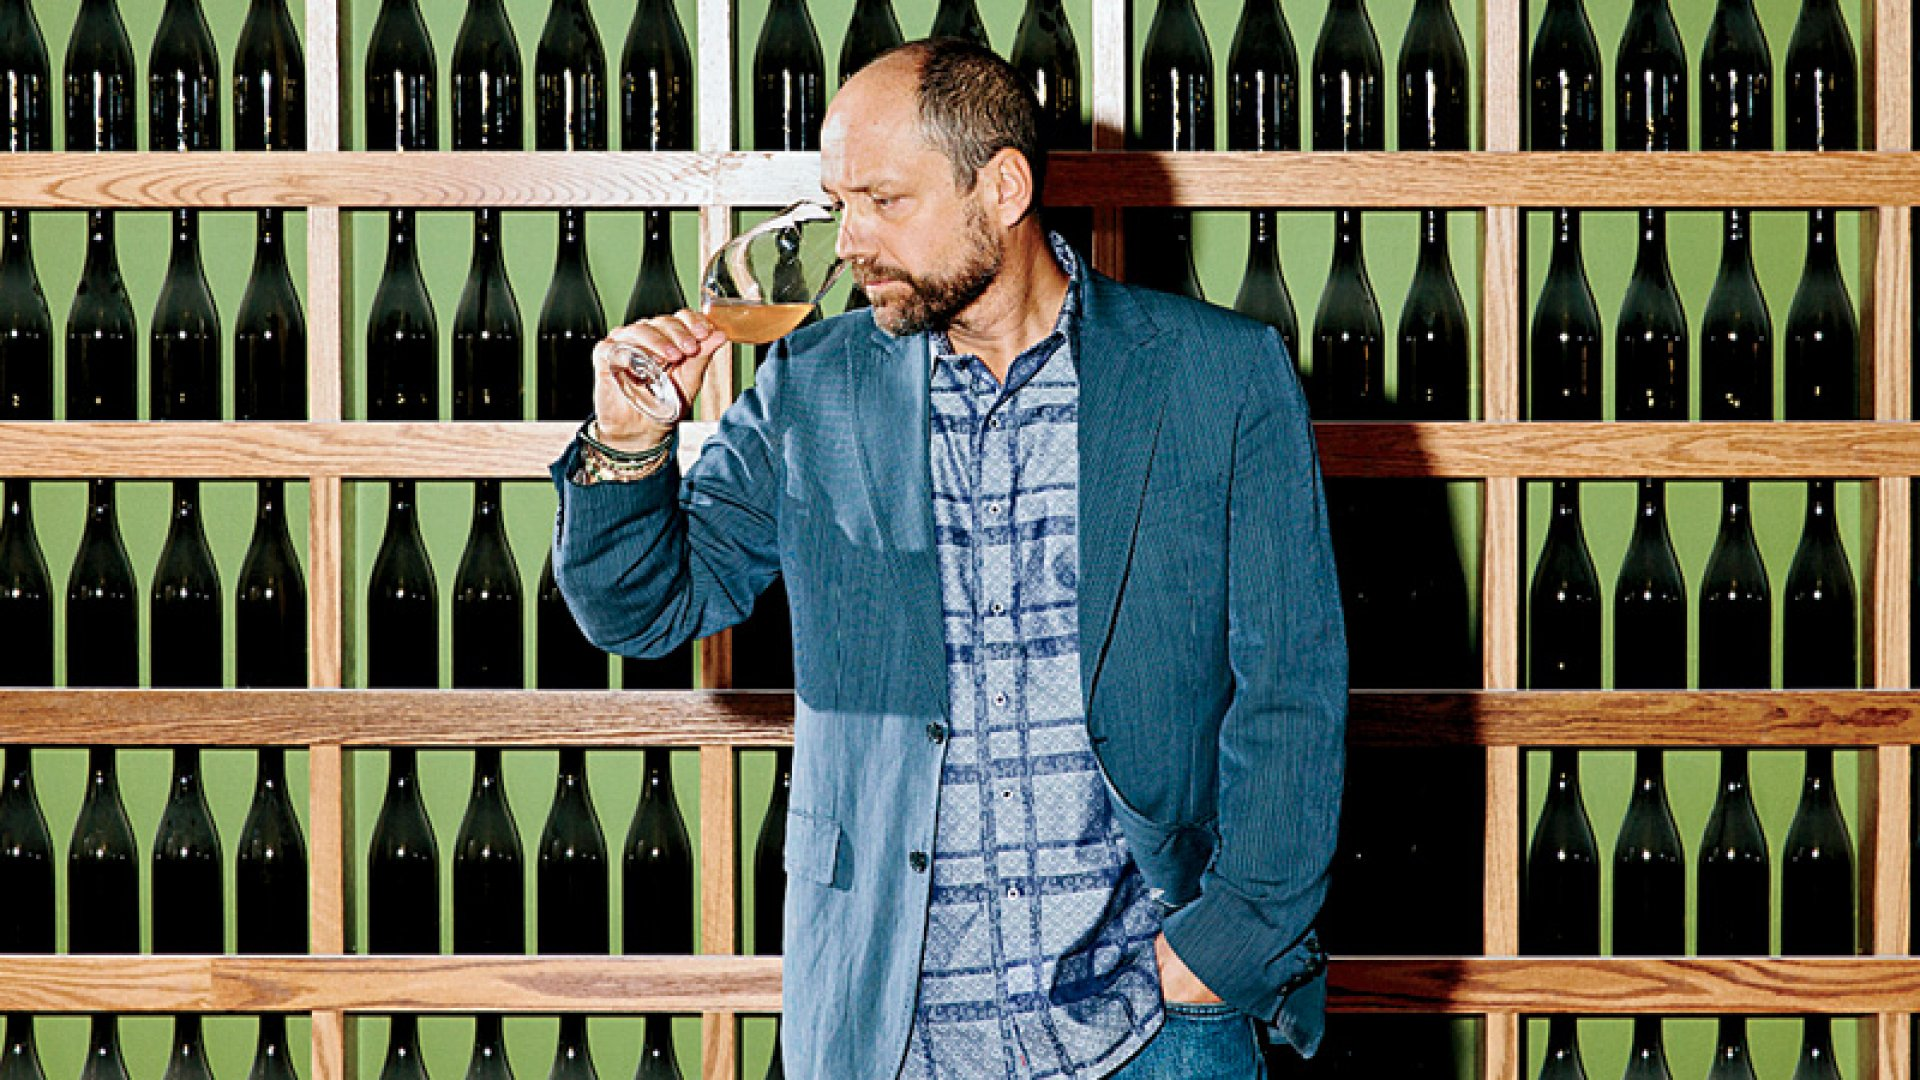 From New York to Napa: Meet the Man Behind City Winery